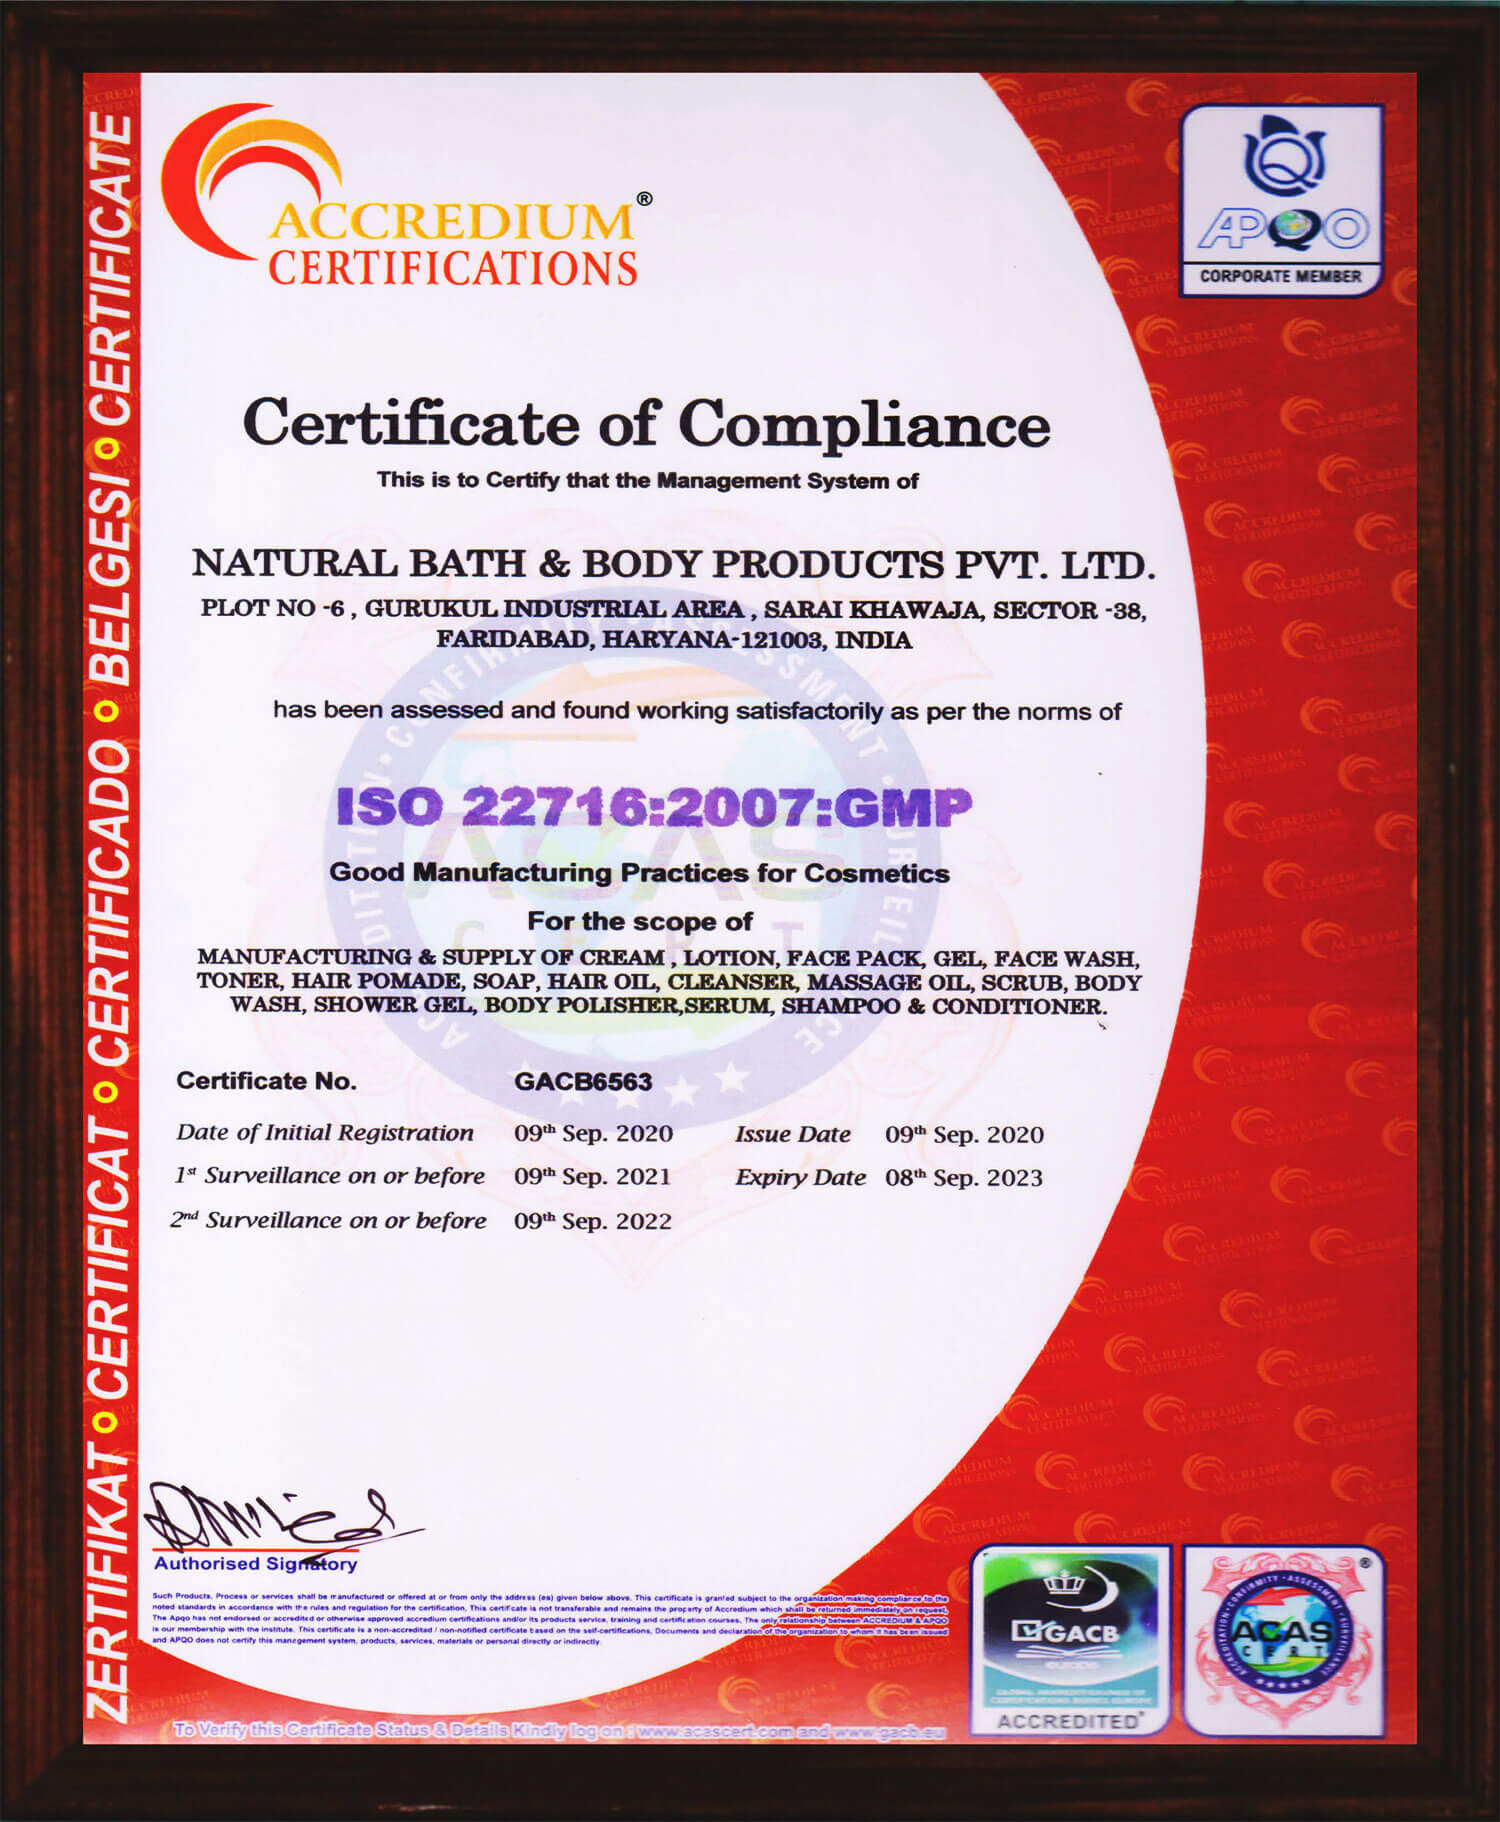 Certificate of ISO 22716:2007:GMP